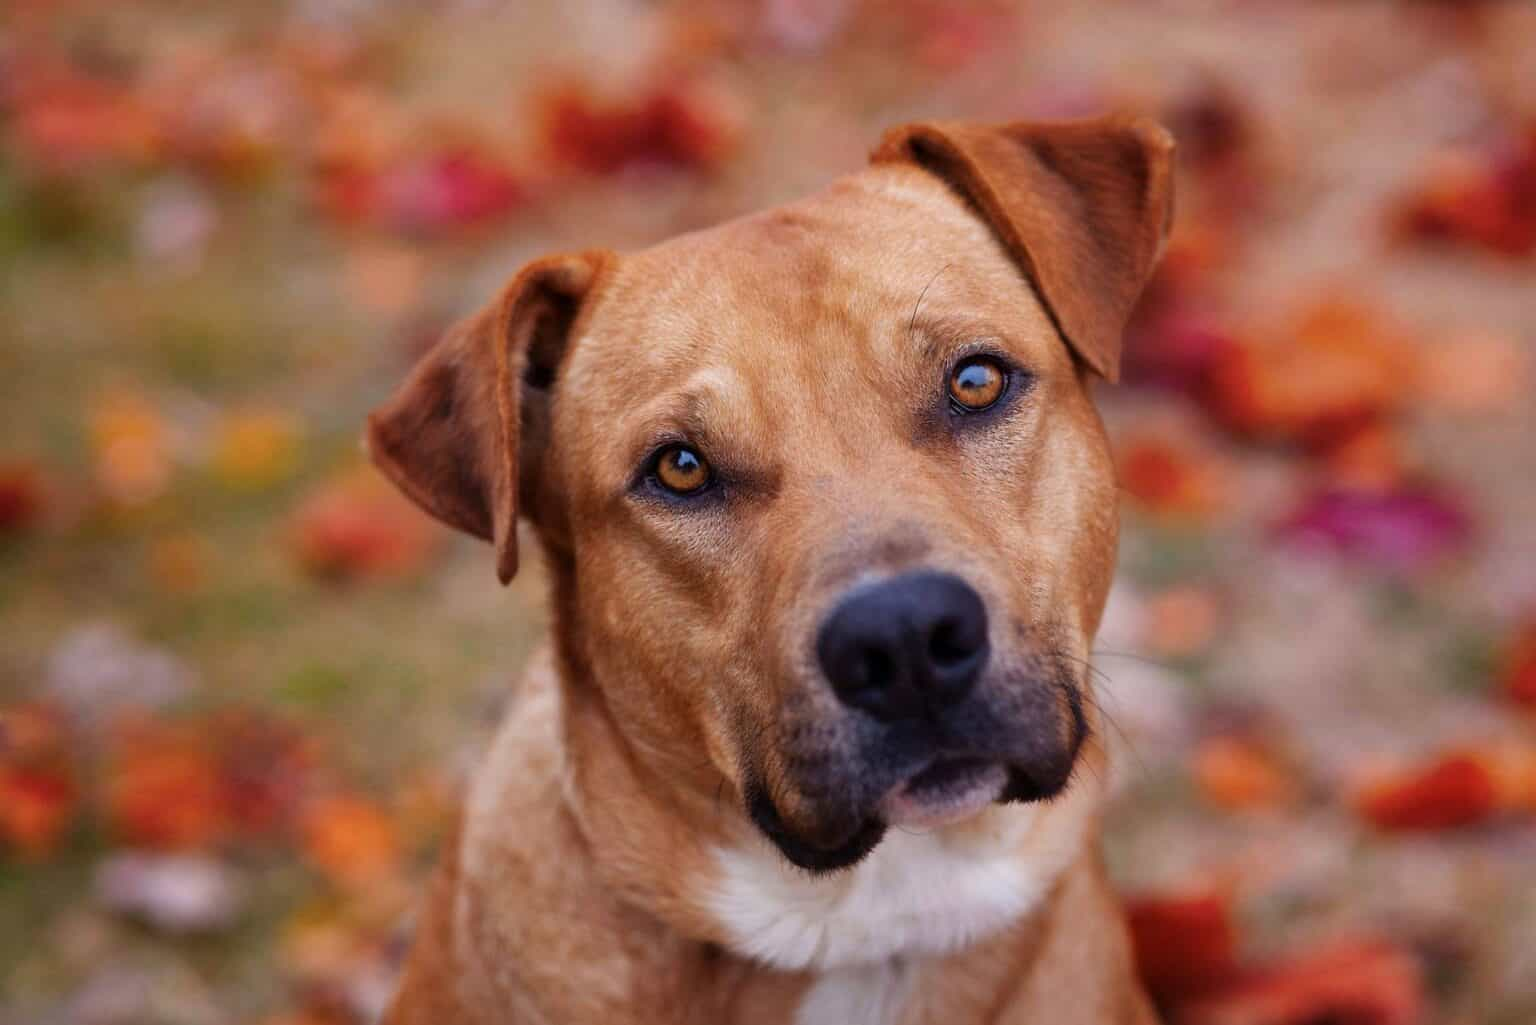 tan pit bull type dog looks into camera with beautiful fall leaves behind him